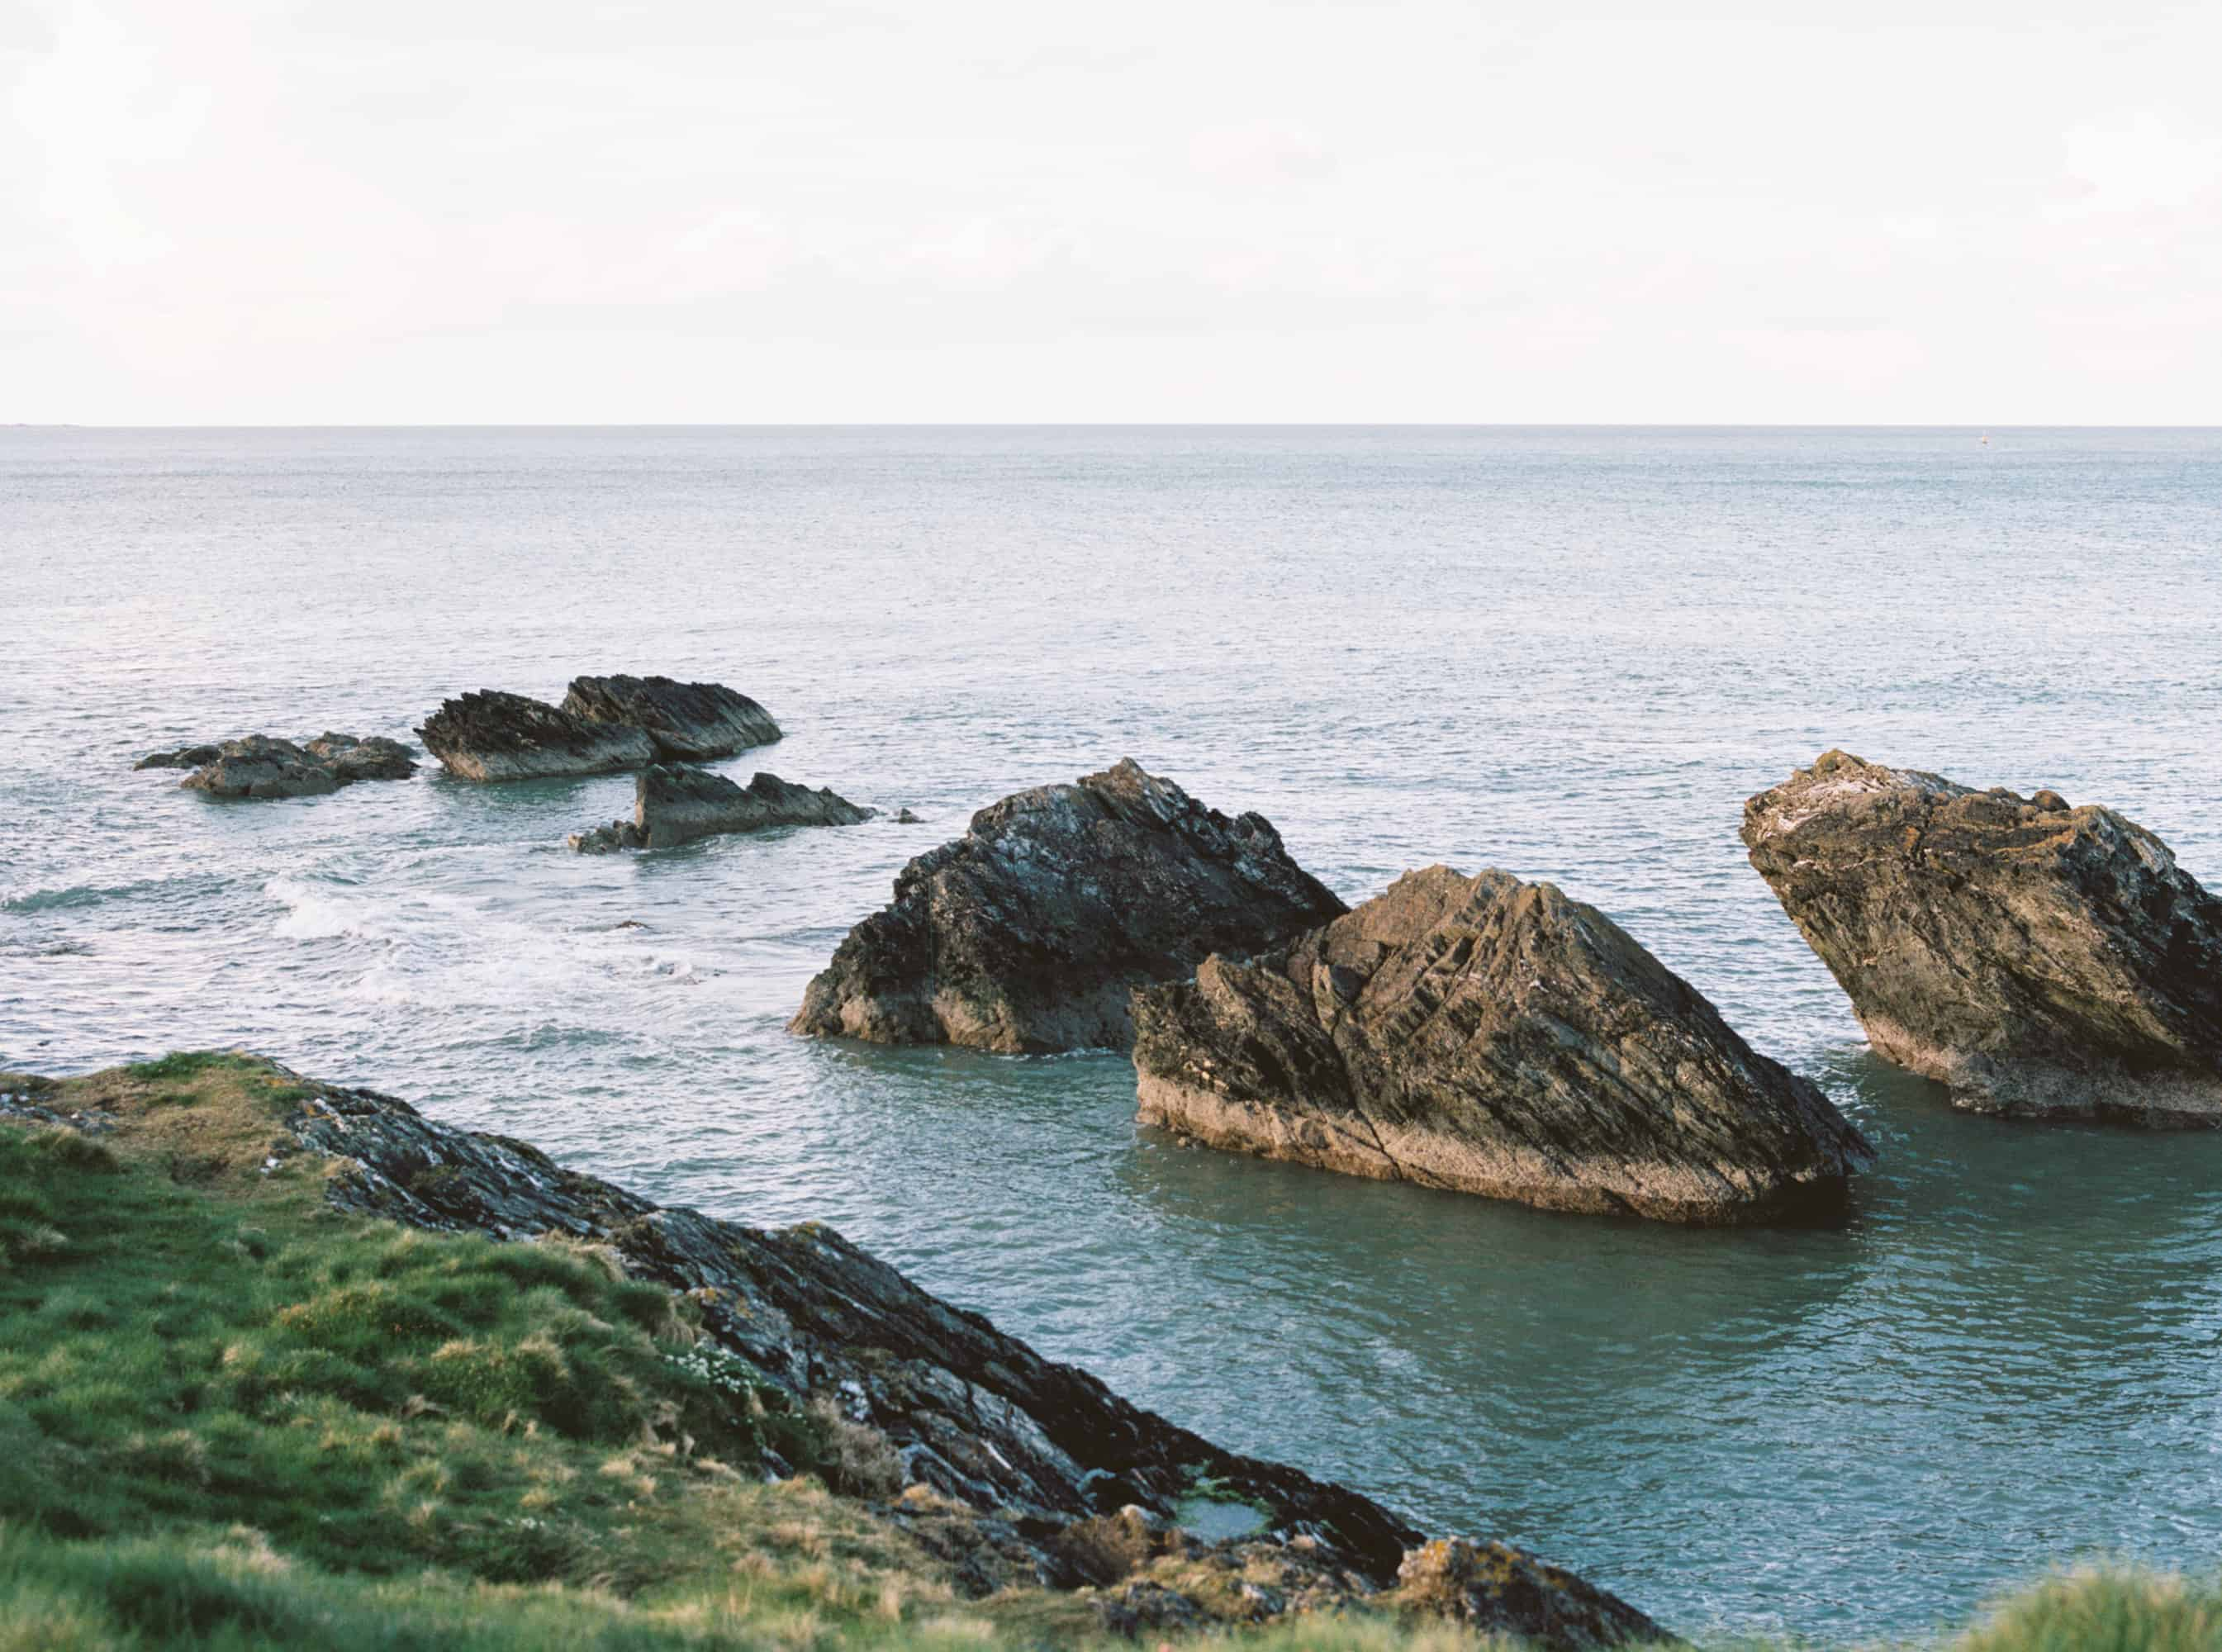 Coast of Wicklow, Ireland photographed on film by Kate Lamb of Wild in Love Photo.